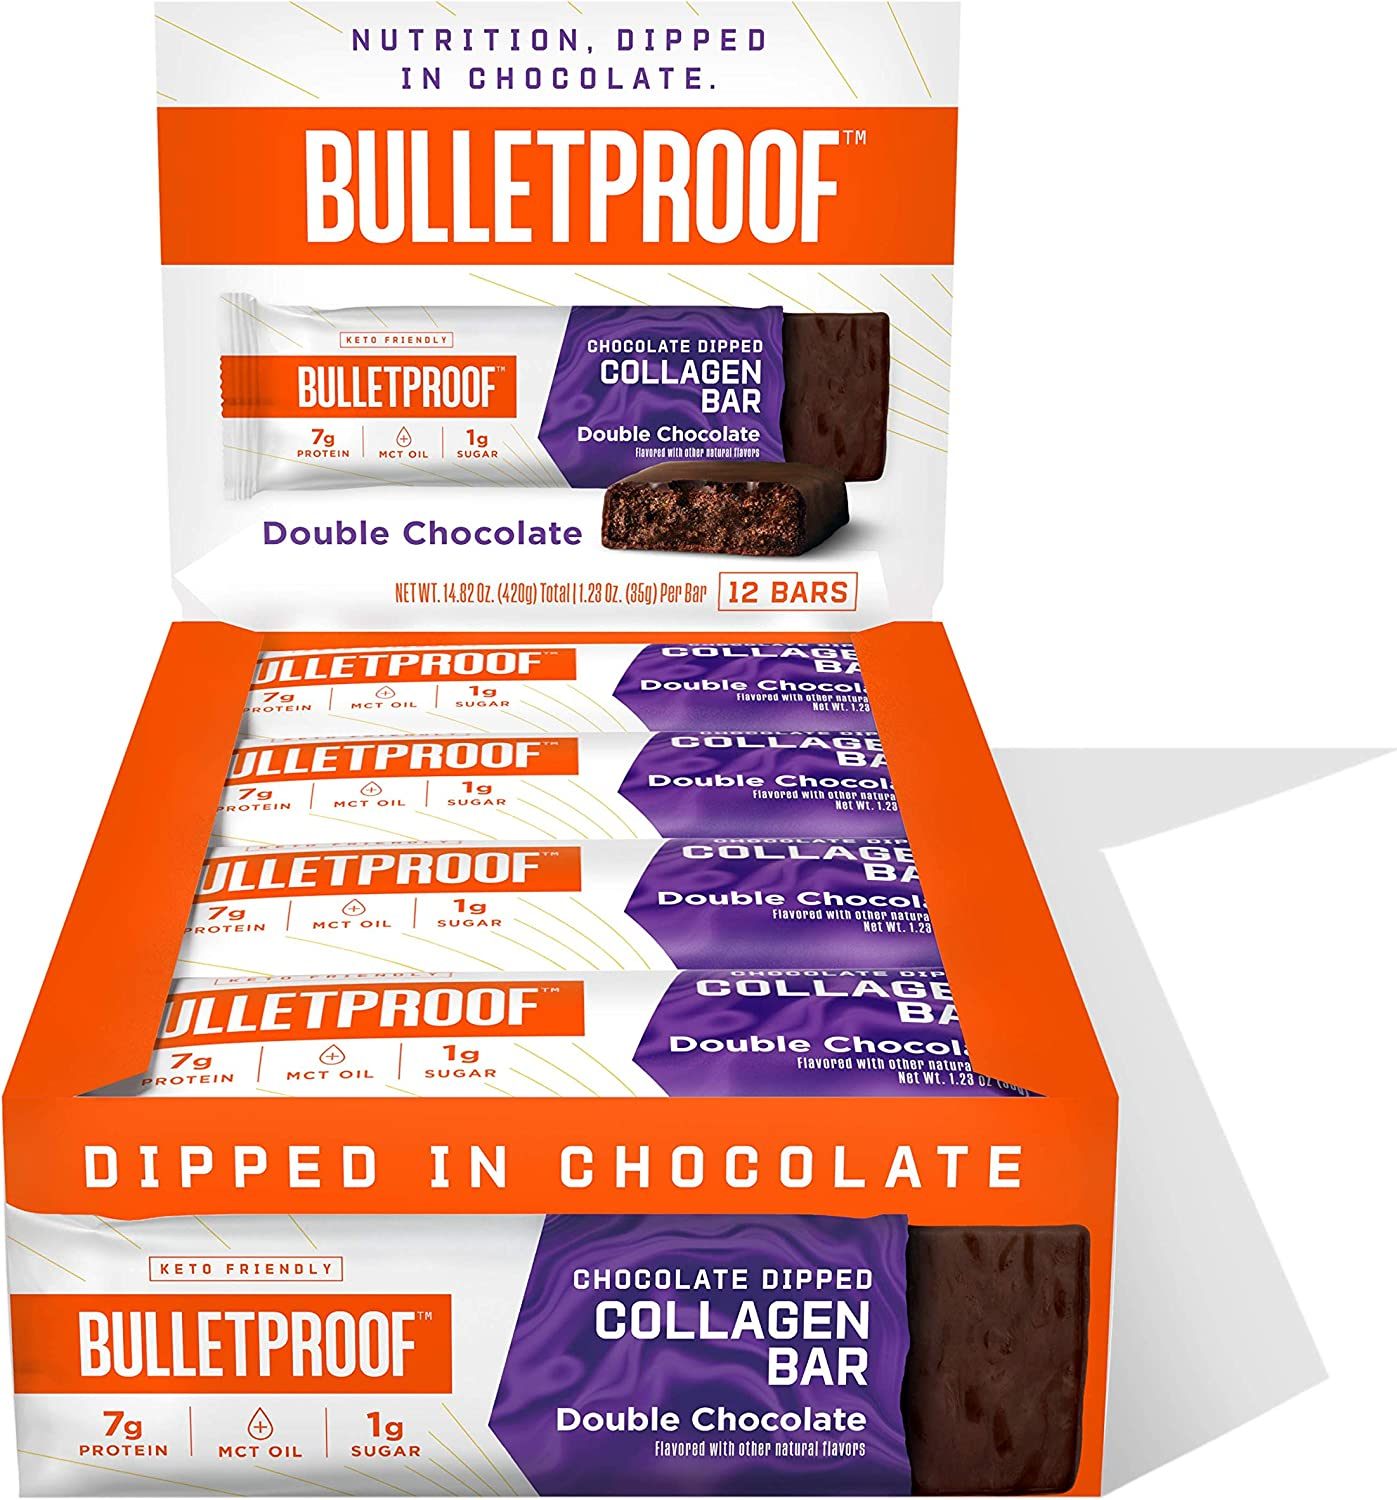 Chocolate Dipped Protein Bars, Double Chocolate, 7g Protein, 12 Pack, Bulletproof Grass Fed Collagen and MCT Oil, Healthy Snacks, Made with Collagen and MCT Oil